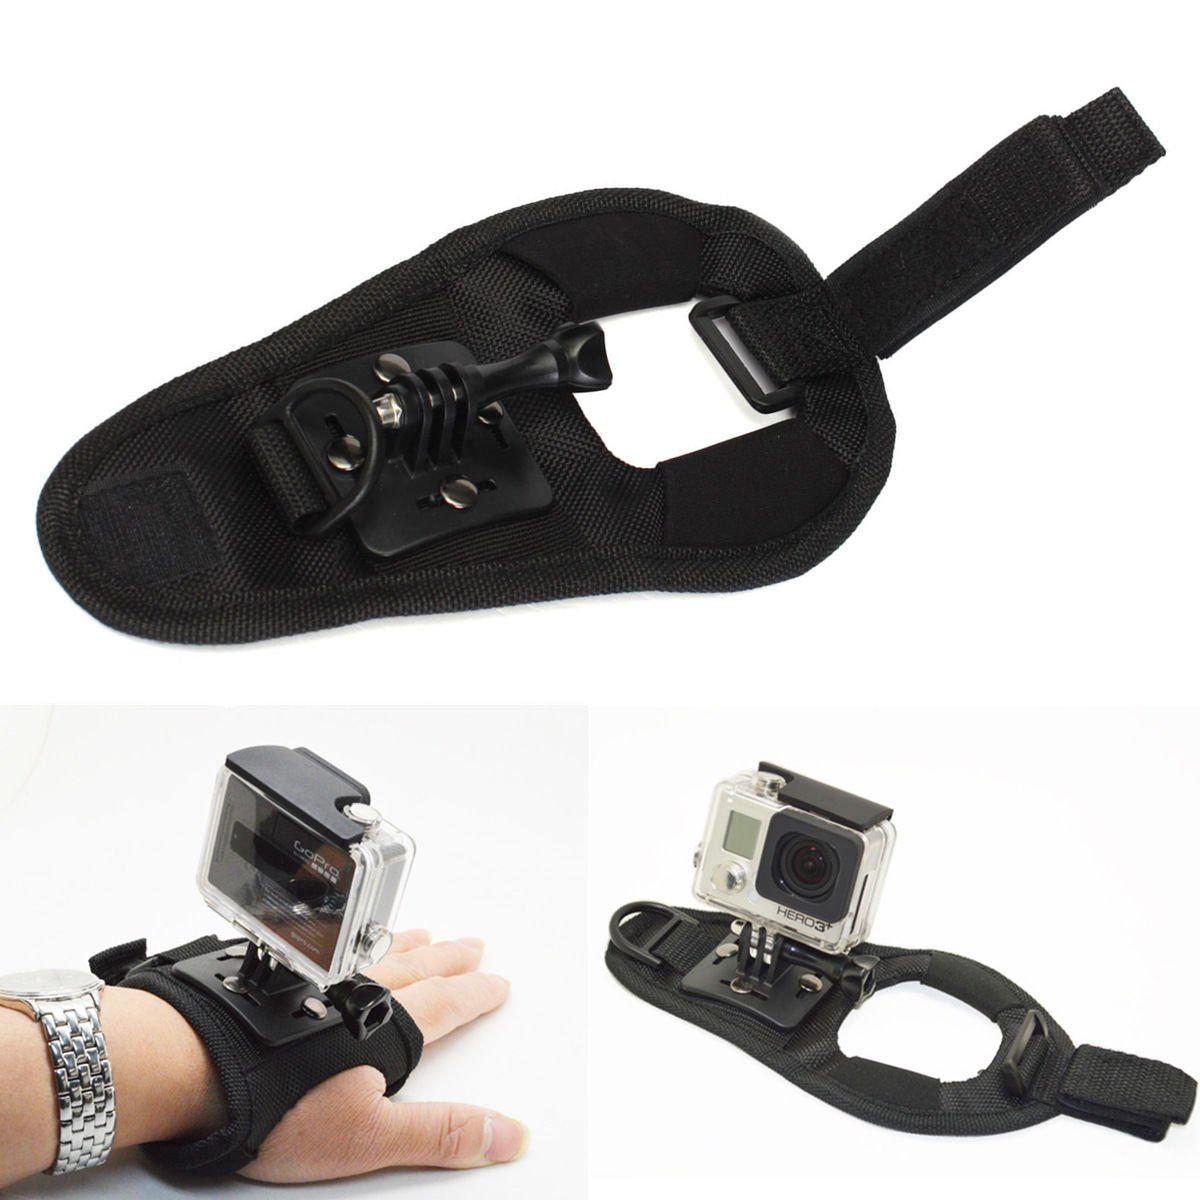 Glove Wristband Wrist Band Mount Strap Accessories For GoPro Hero 3+ 4 Session       VW2